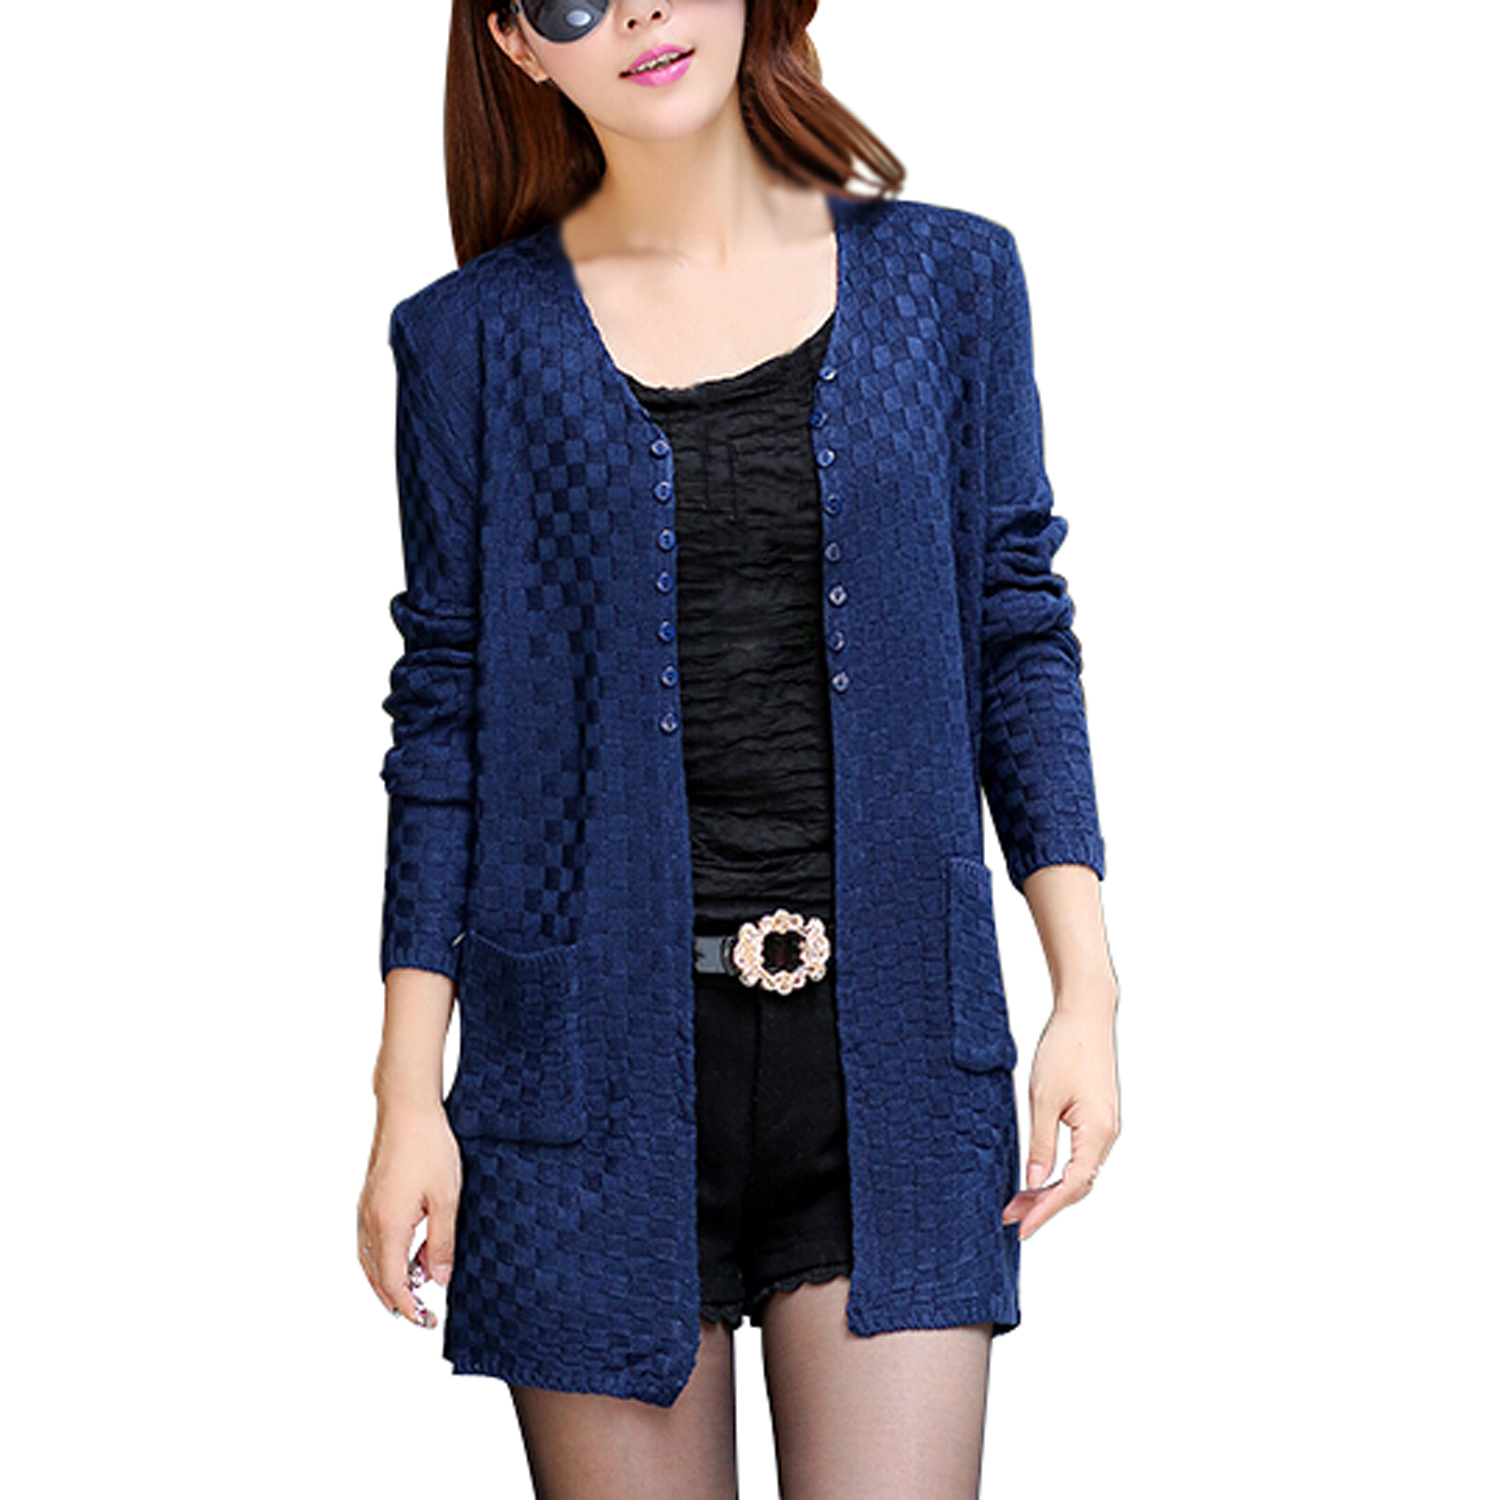 Buy Cardigan Blue And Get Free Shipping On Mooi Printing Premium Sweater Top